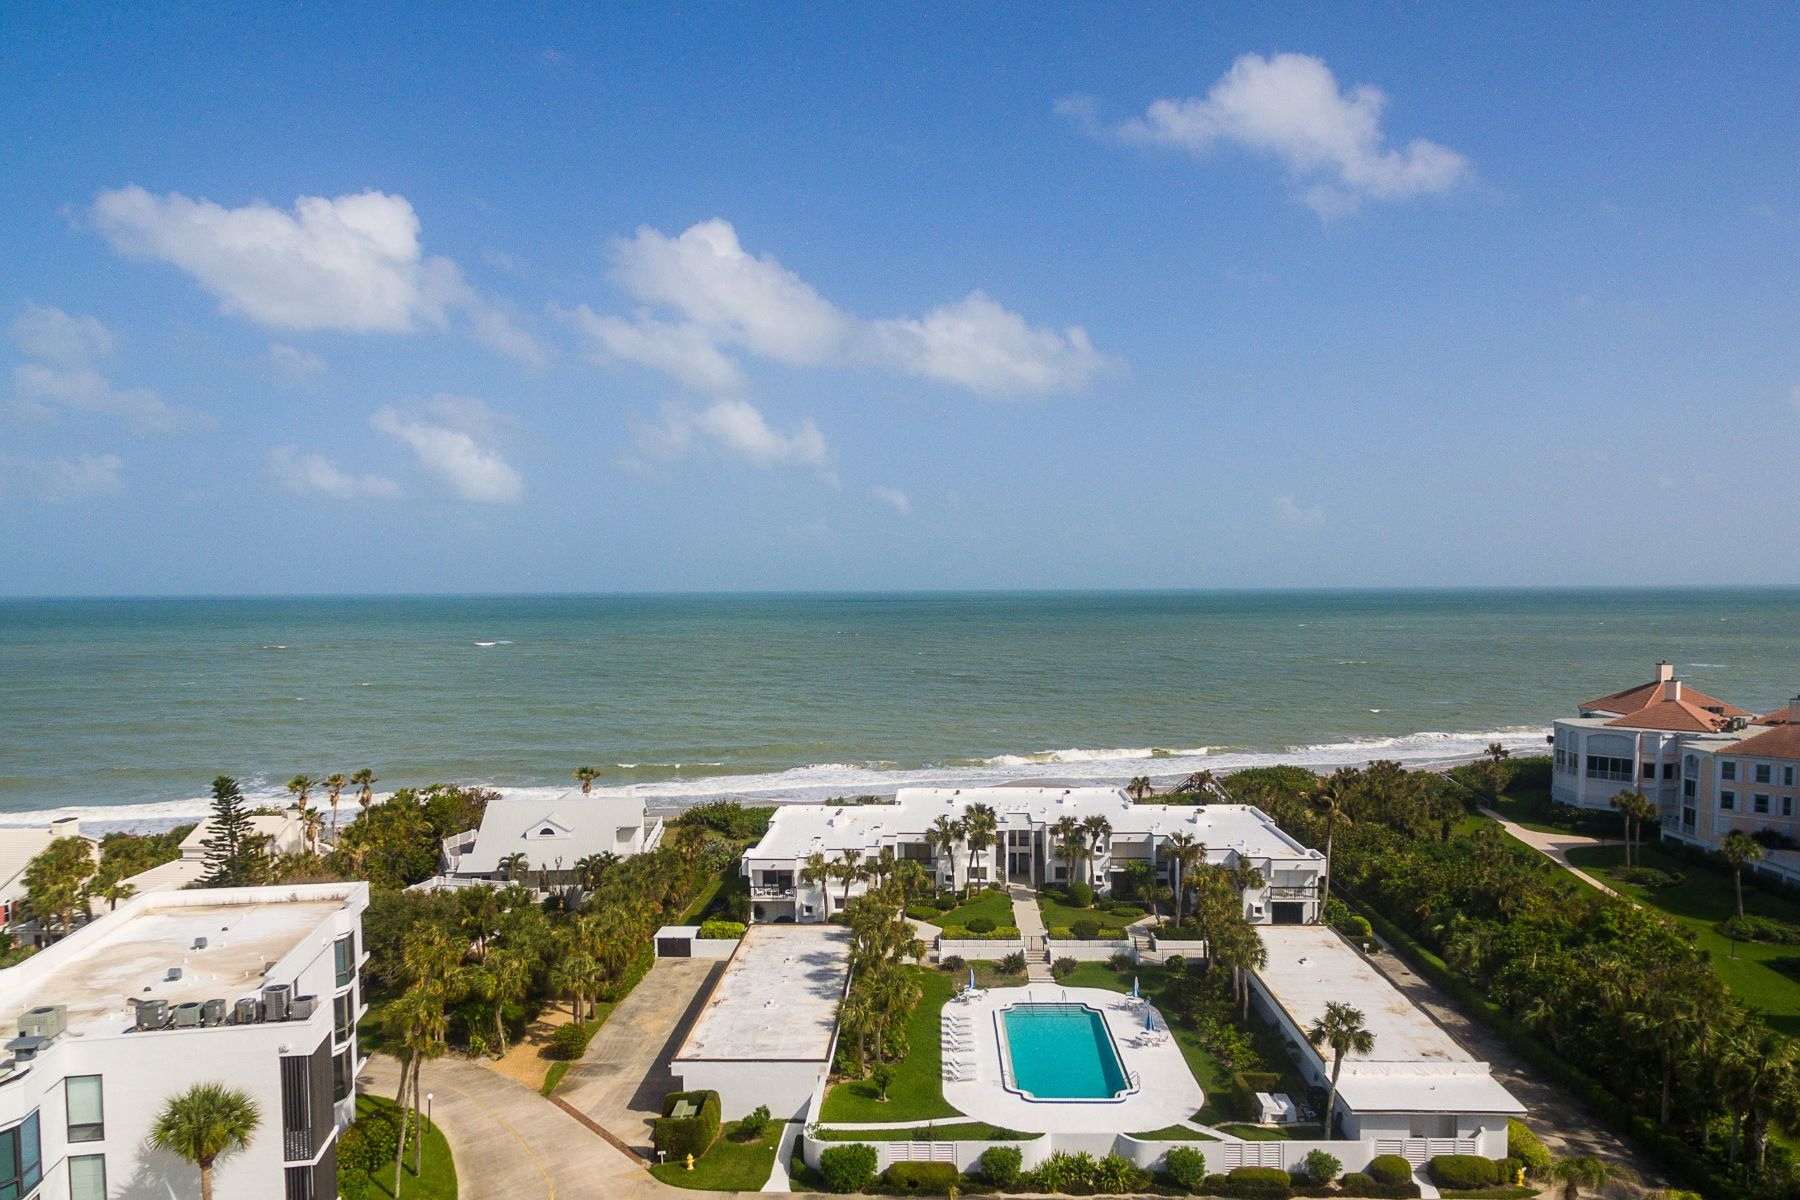 for Sale at 5790 Highway A1a, 1A Indian River Shores, Florida 32963 United States